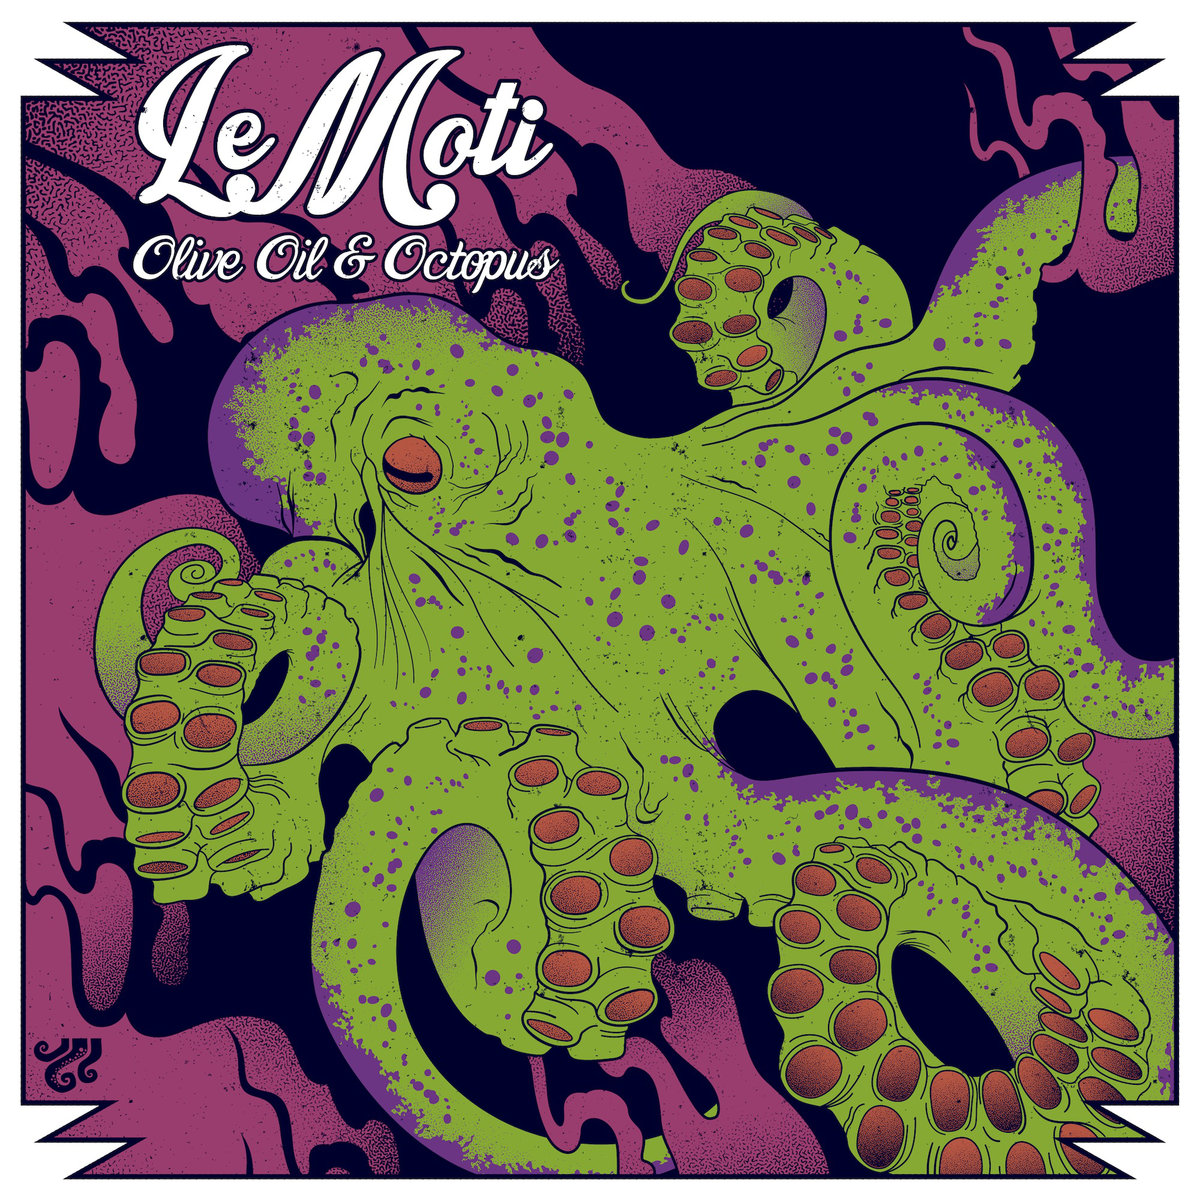 LeMoti - Out From Under @ 'Olive Oil & Octopus' album (Austin)